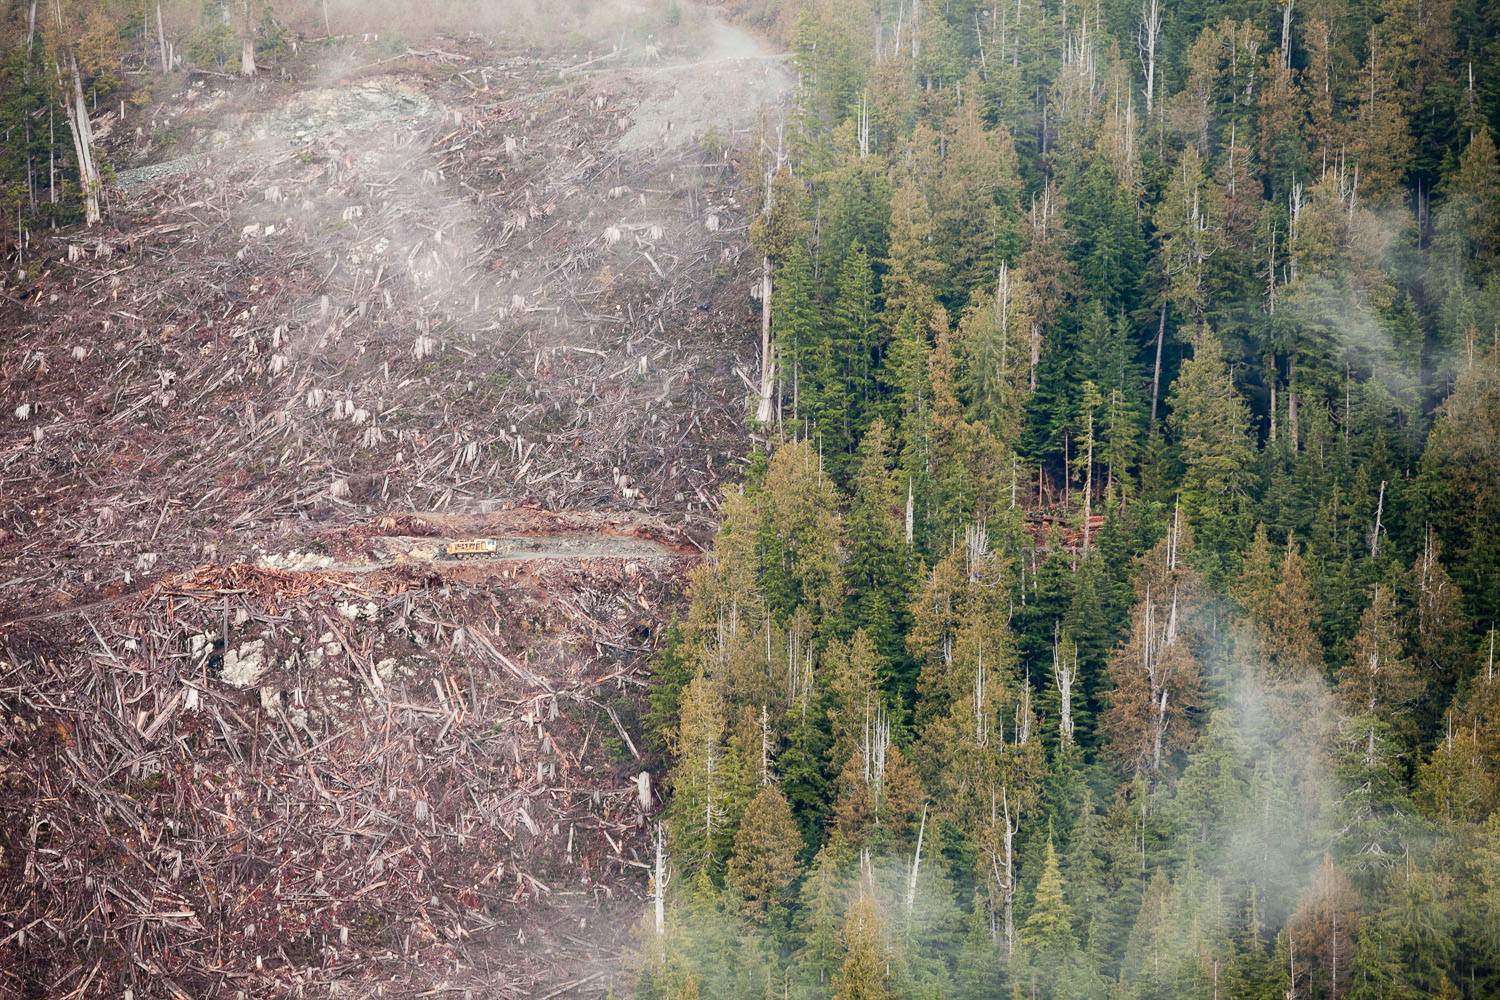 clearcut-vs-old-growth-forest-klanawa-valley.jpg